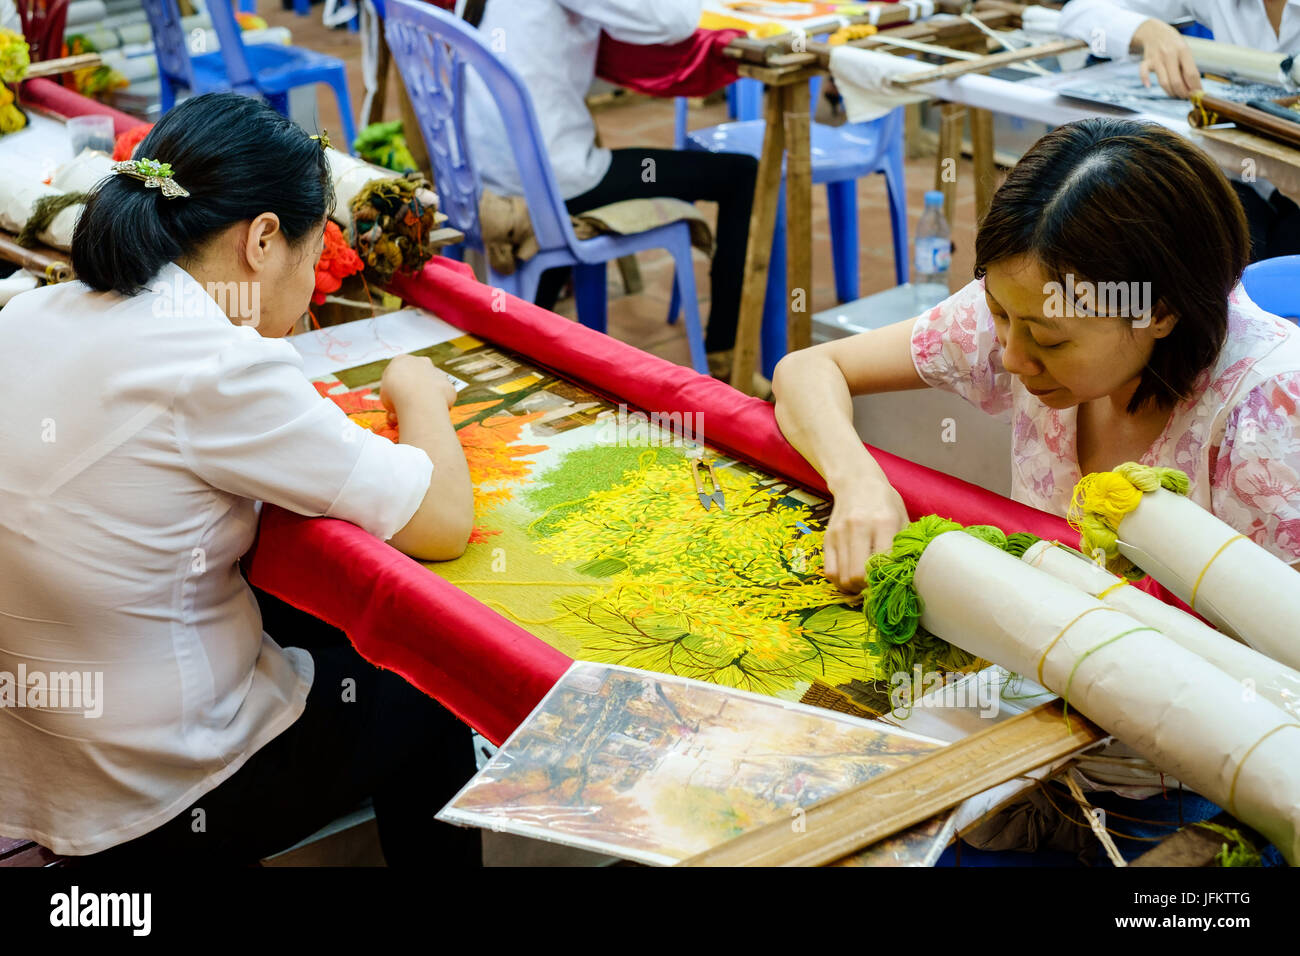 Vietnamese Art and Craft workers producing art works - Stock Image